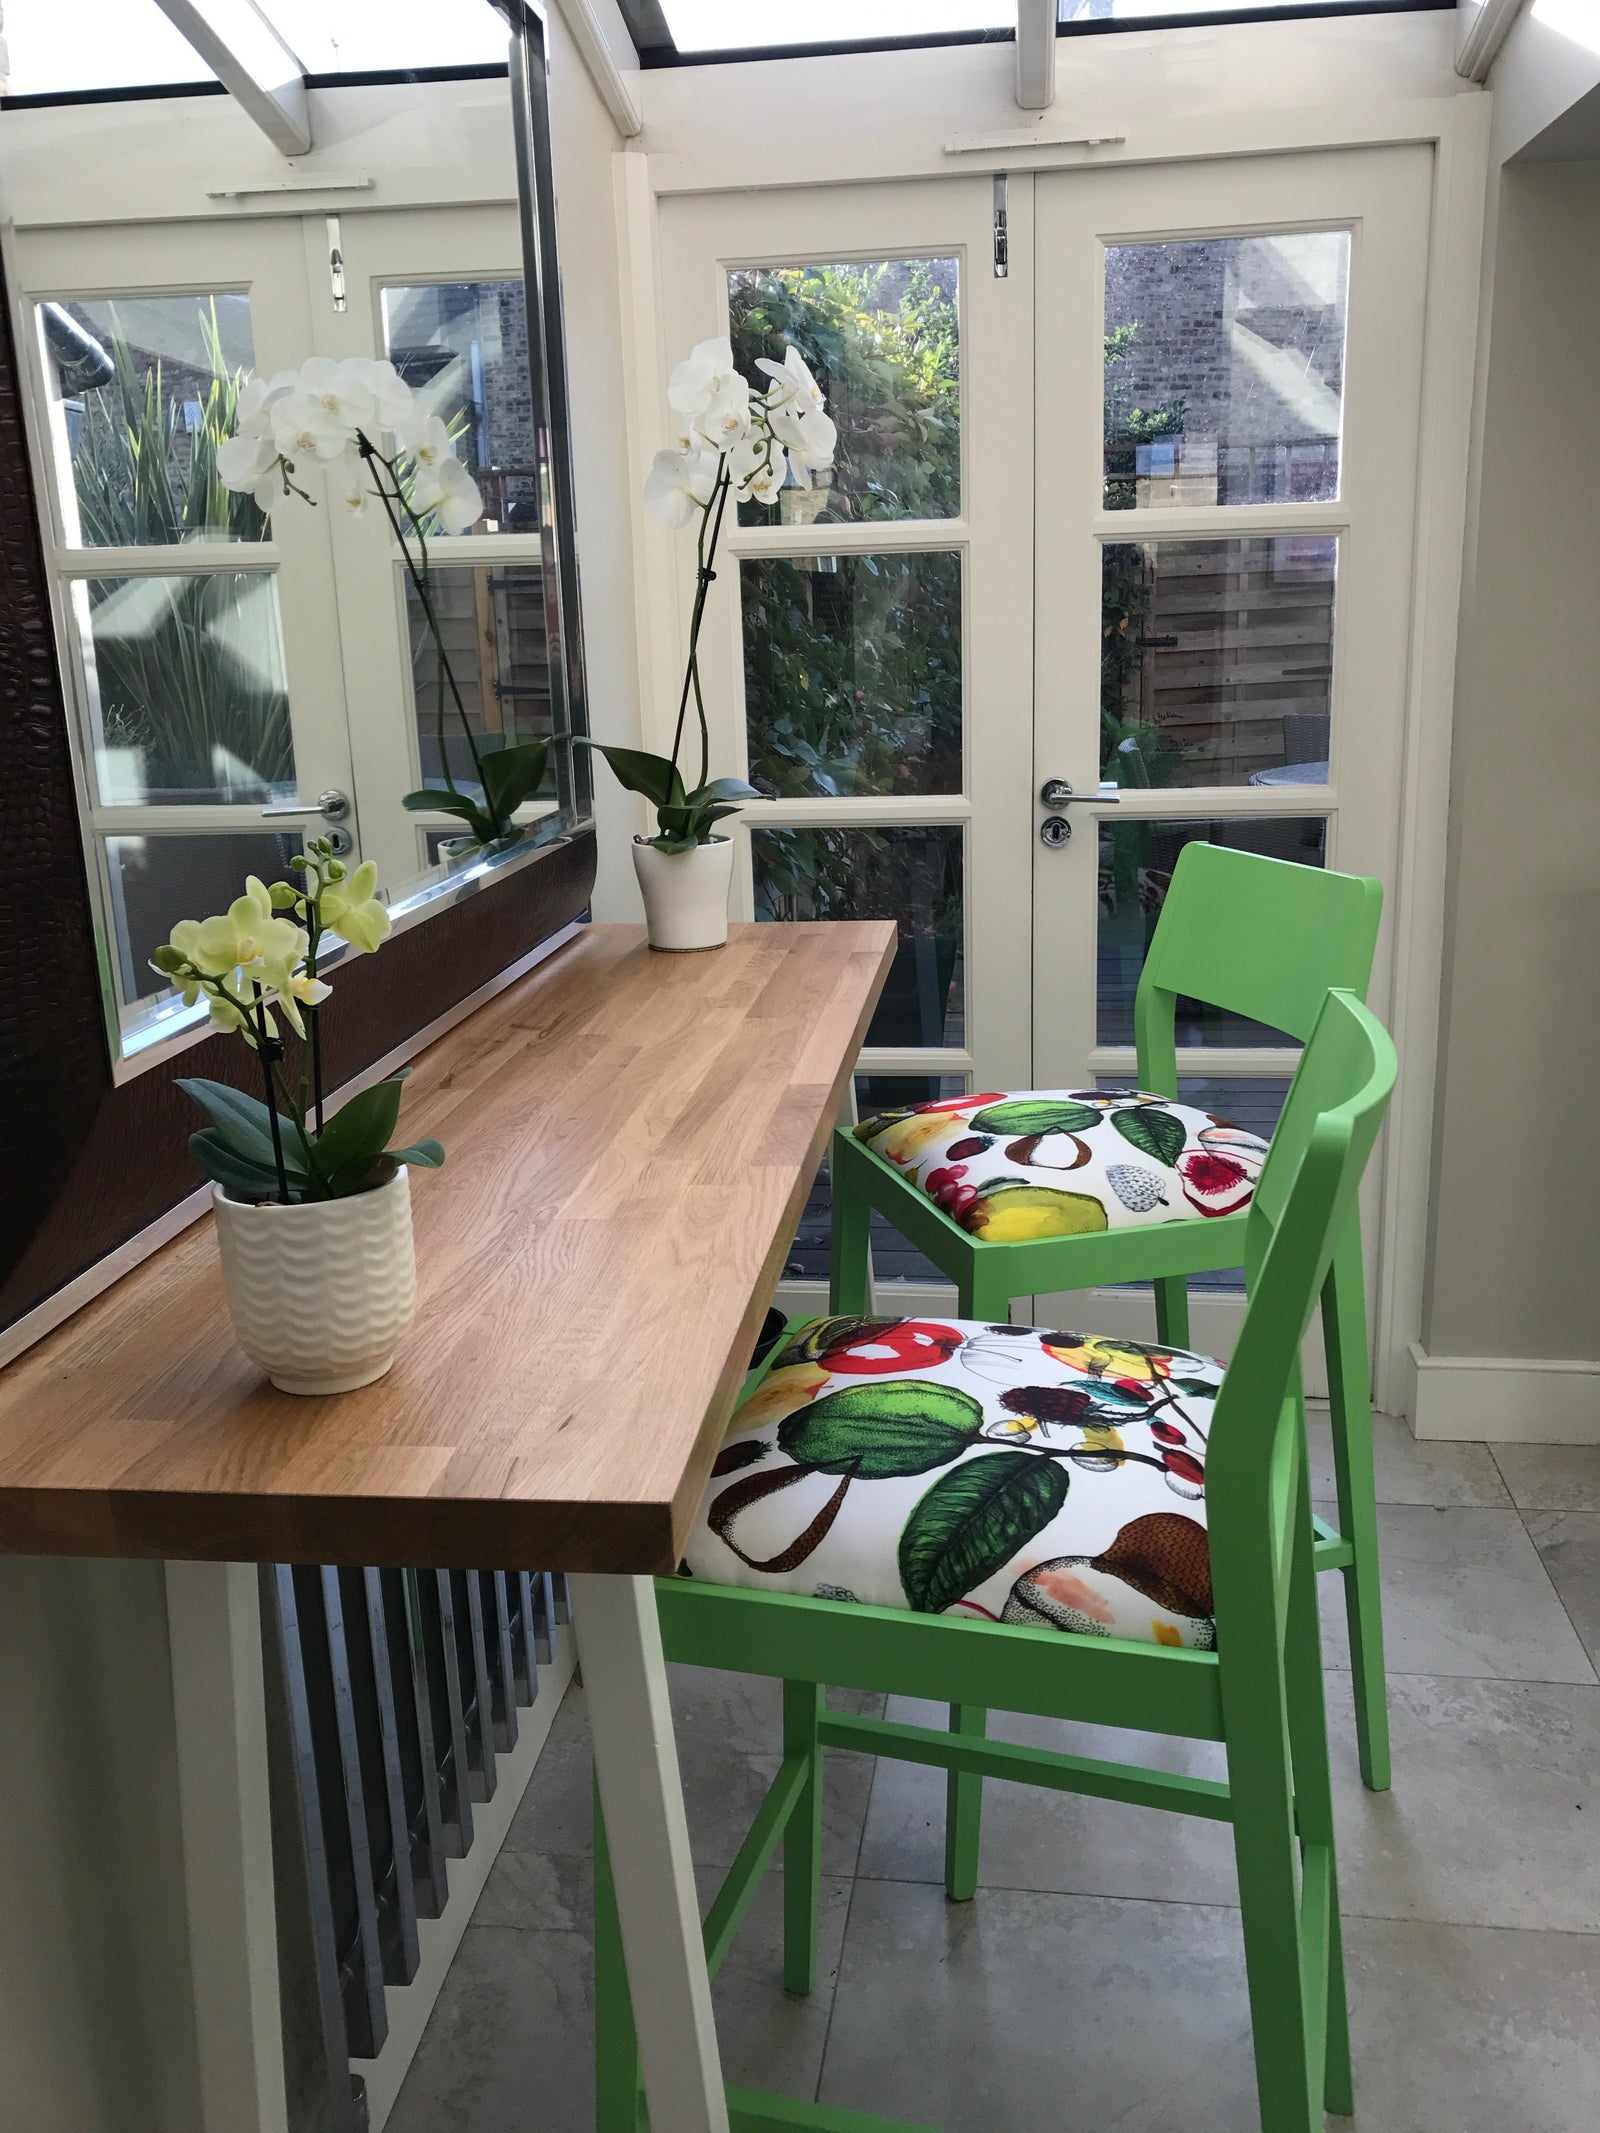 The James design bar stool upholstered in Christian Lacroix print finished in Green.